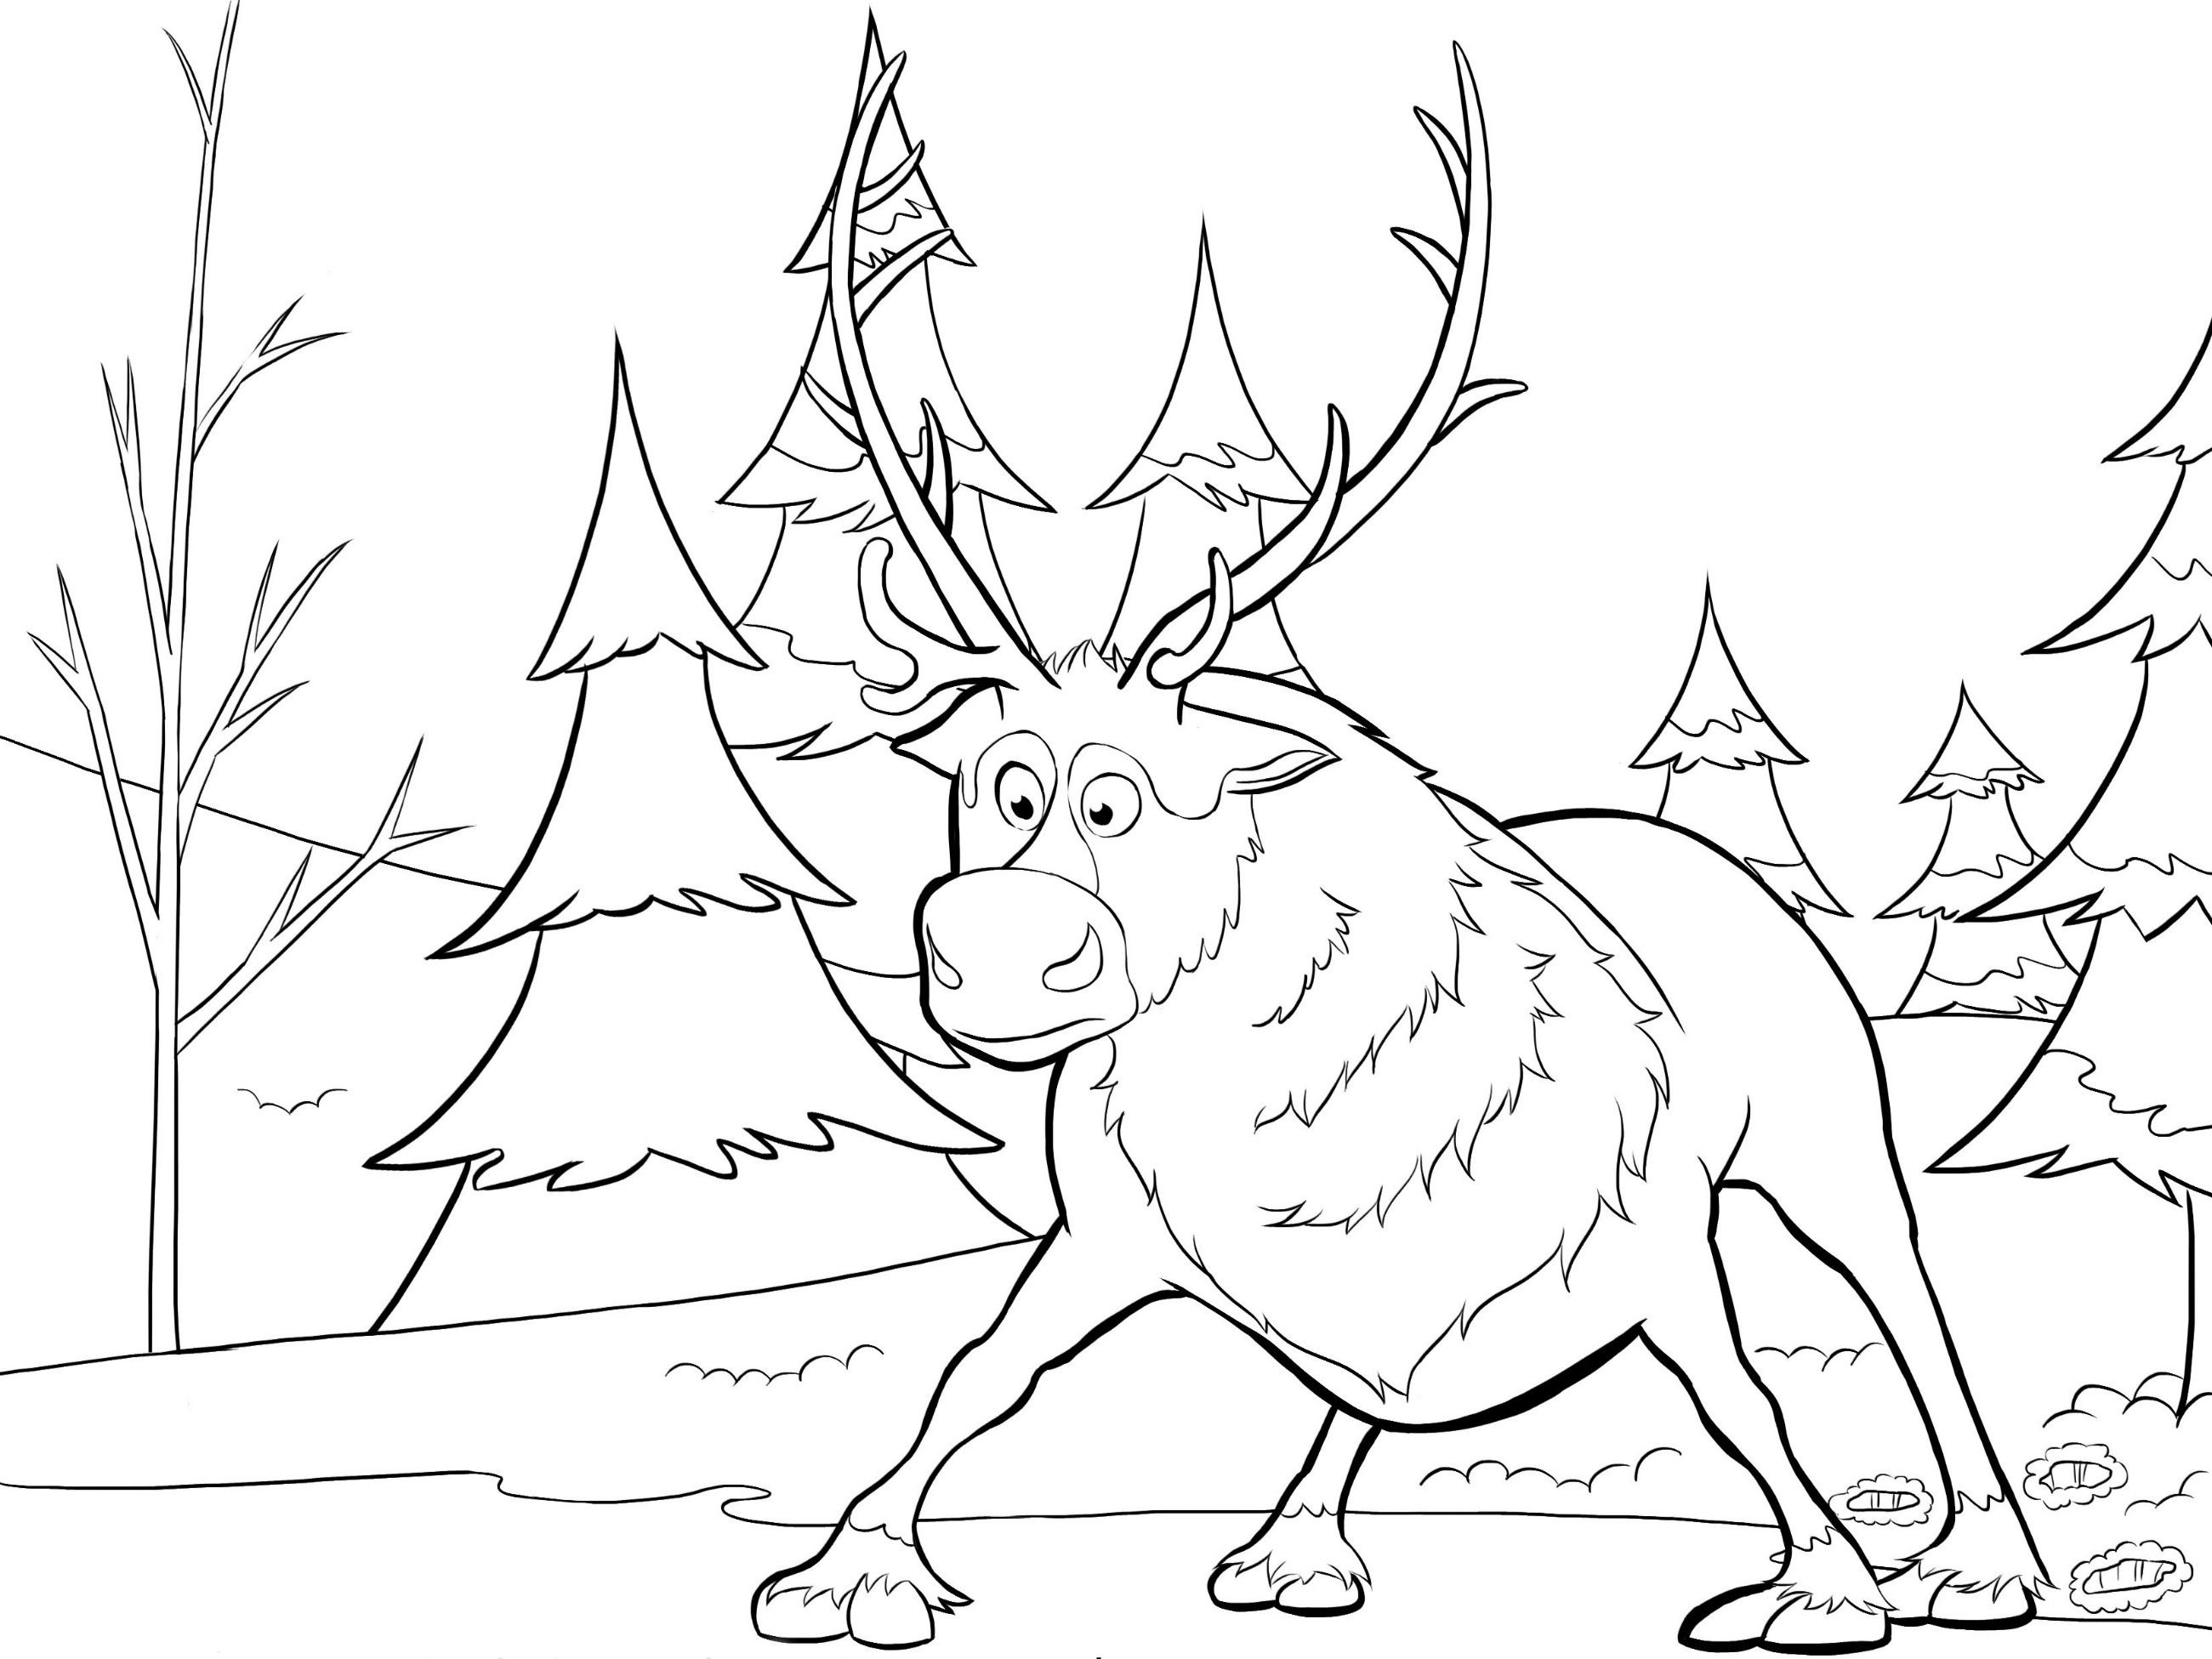 10 Fun Christmas Coloring Pages Including Frozen And The Polar Express That Your Kids Will Love To Color Make For Gifts Or Cards